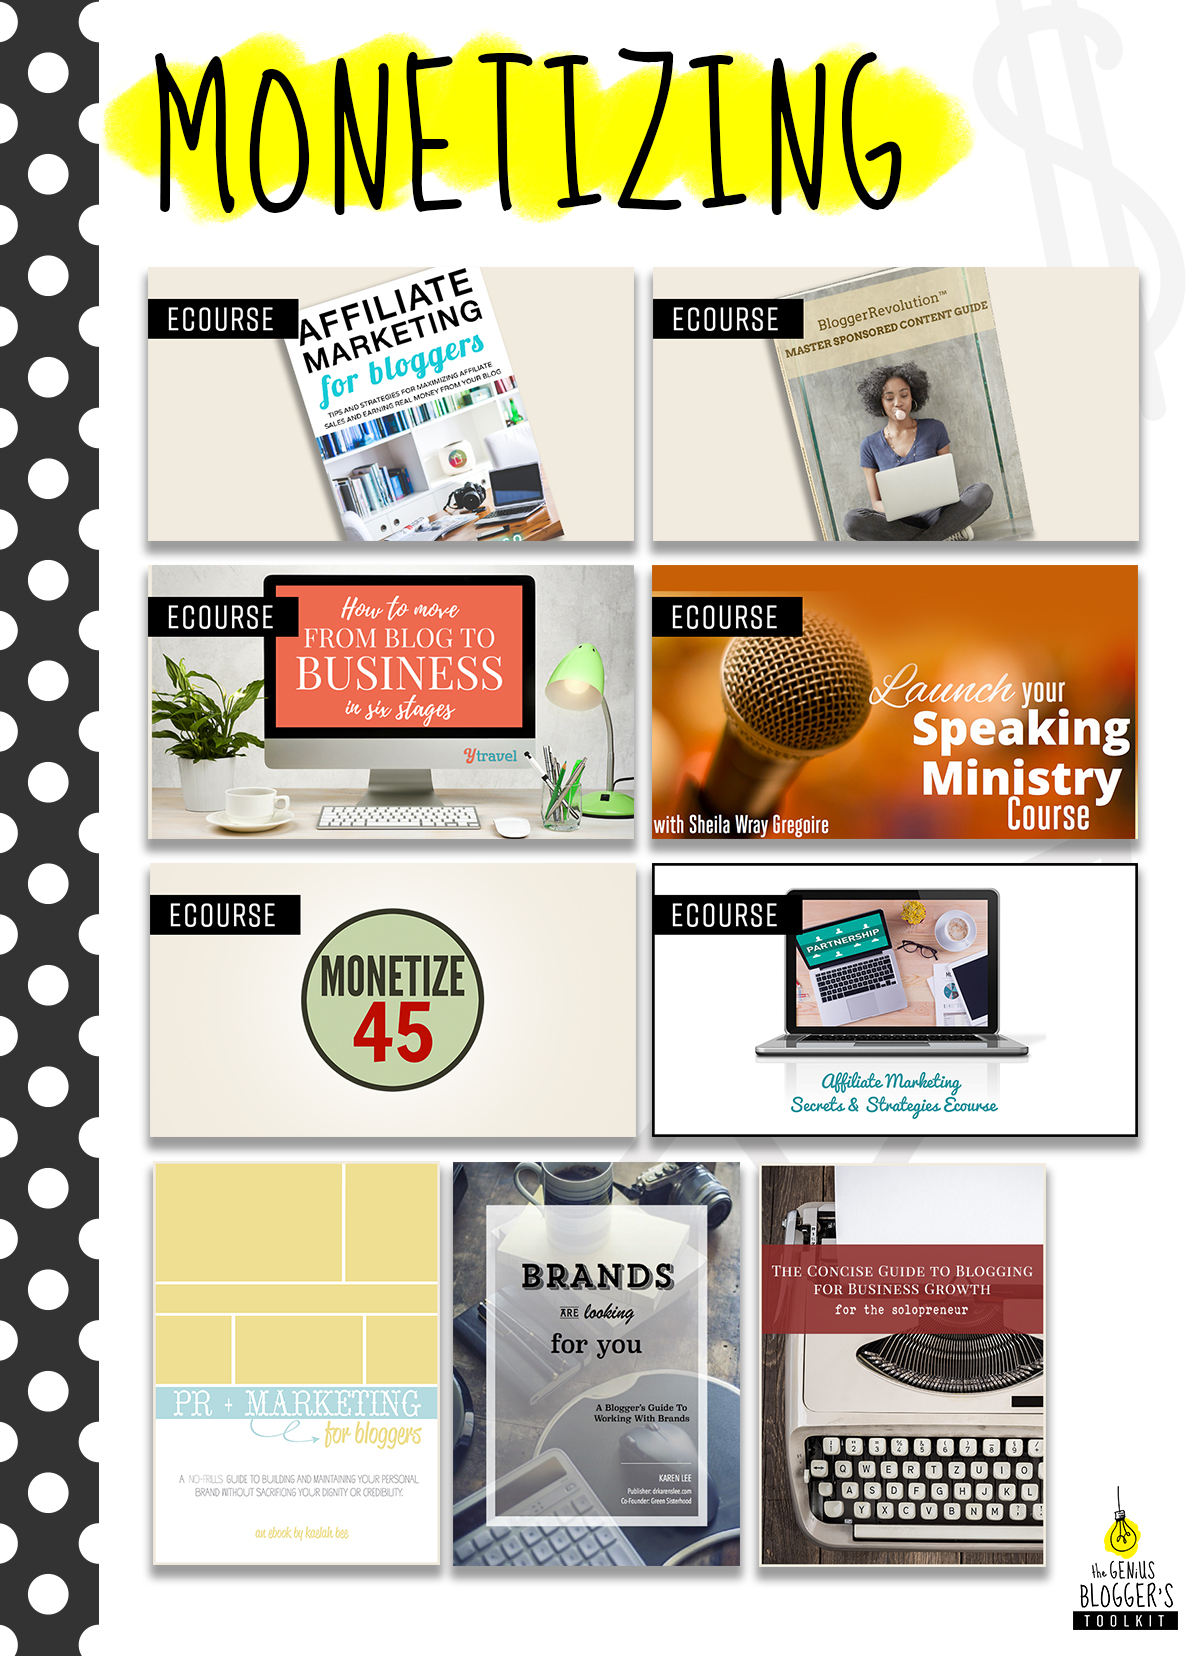 Monetizing your blog with the Genius Blogger's Toolkit